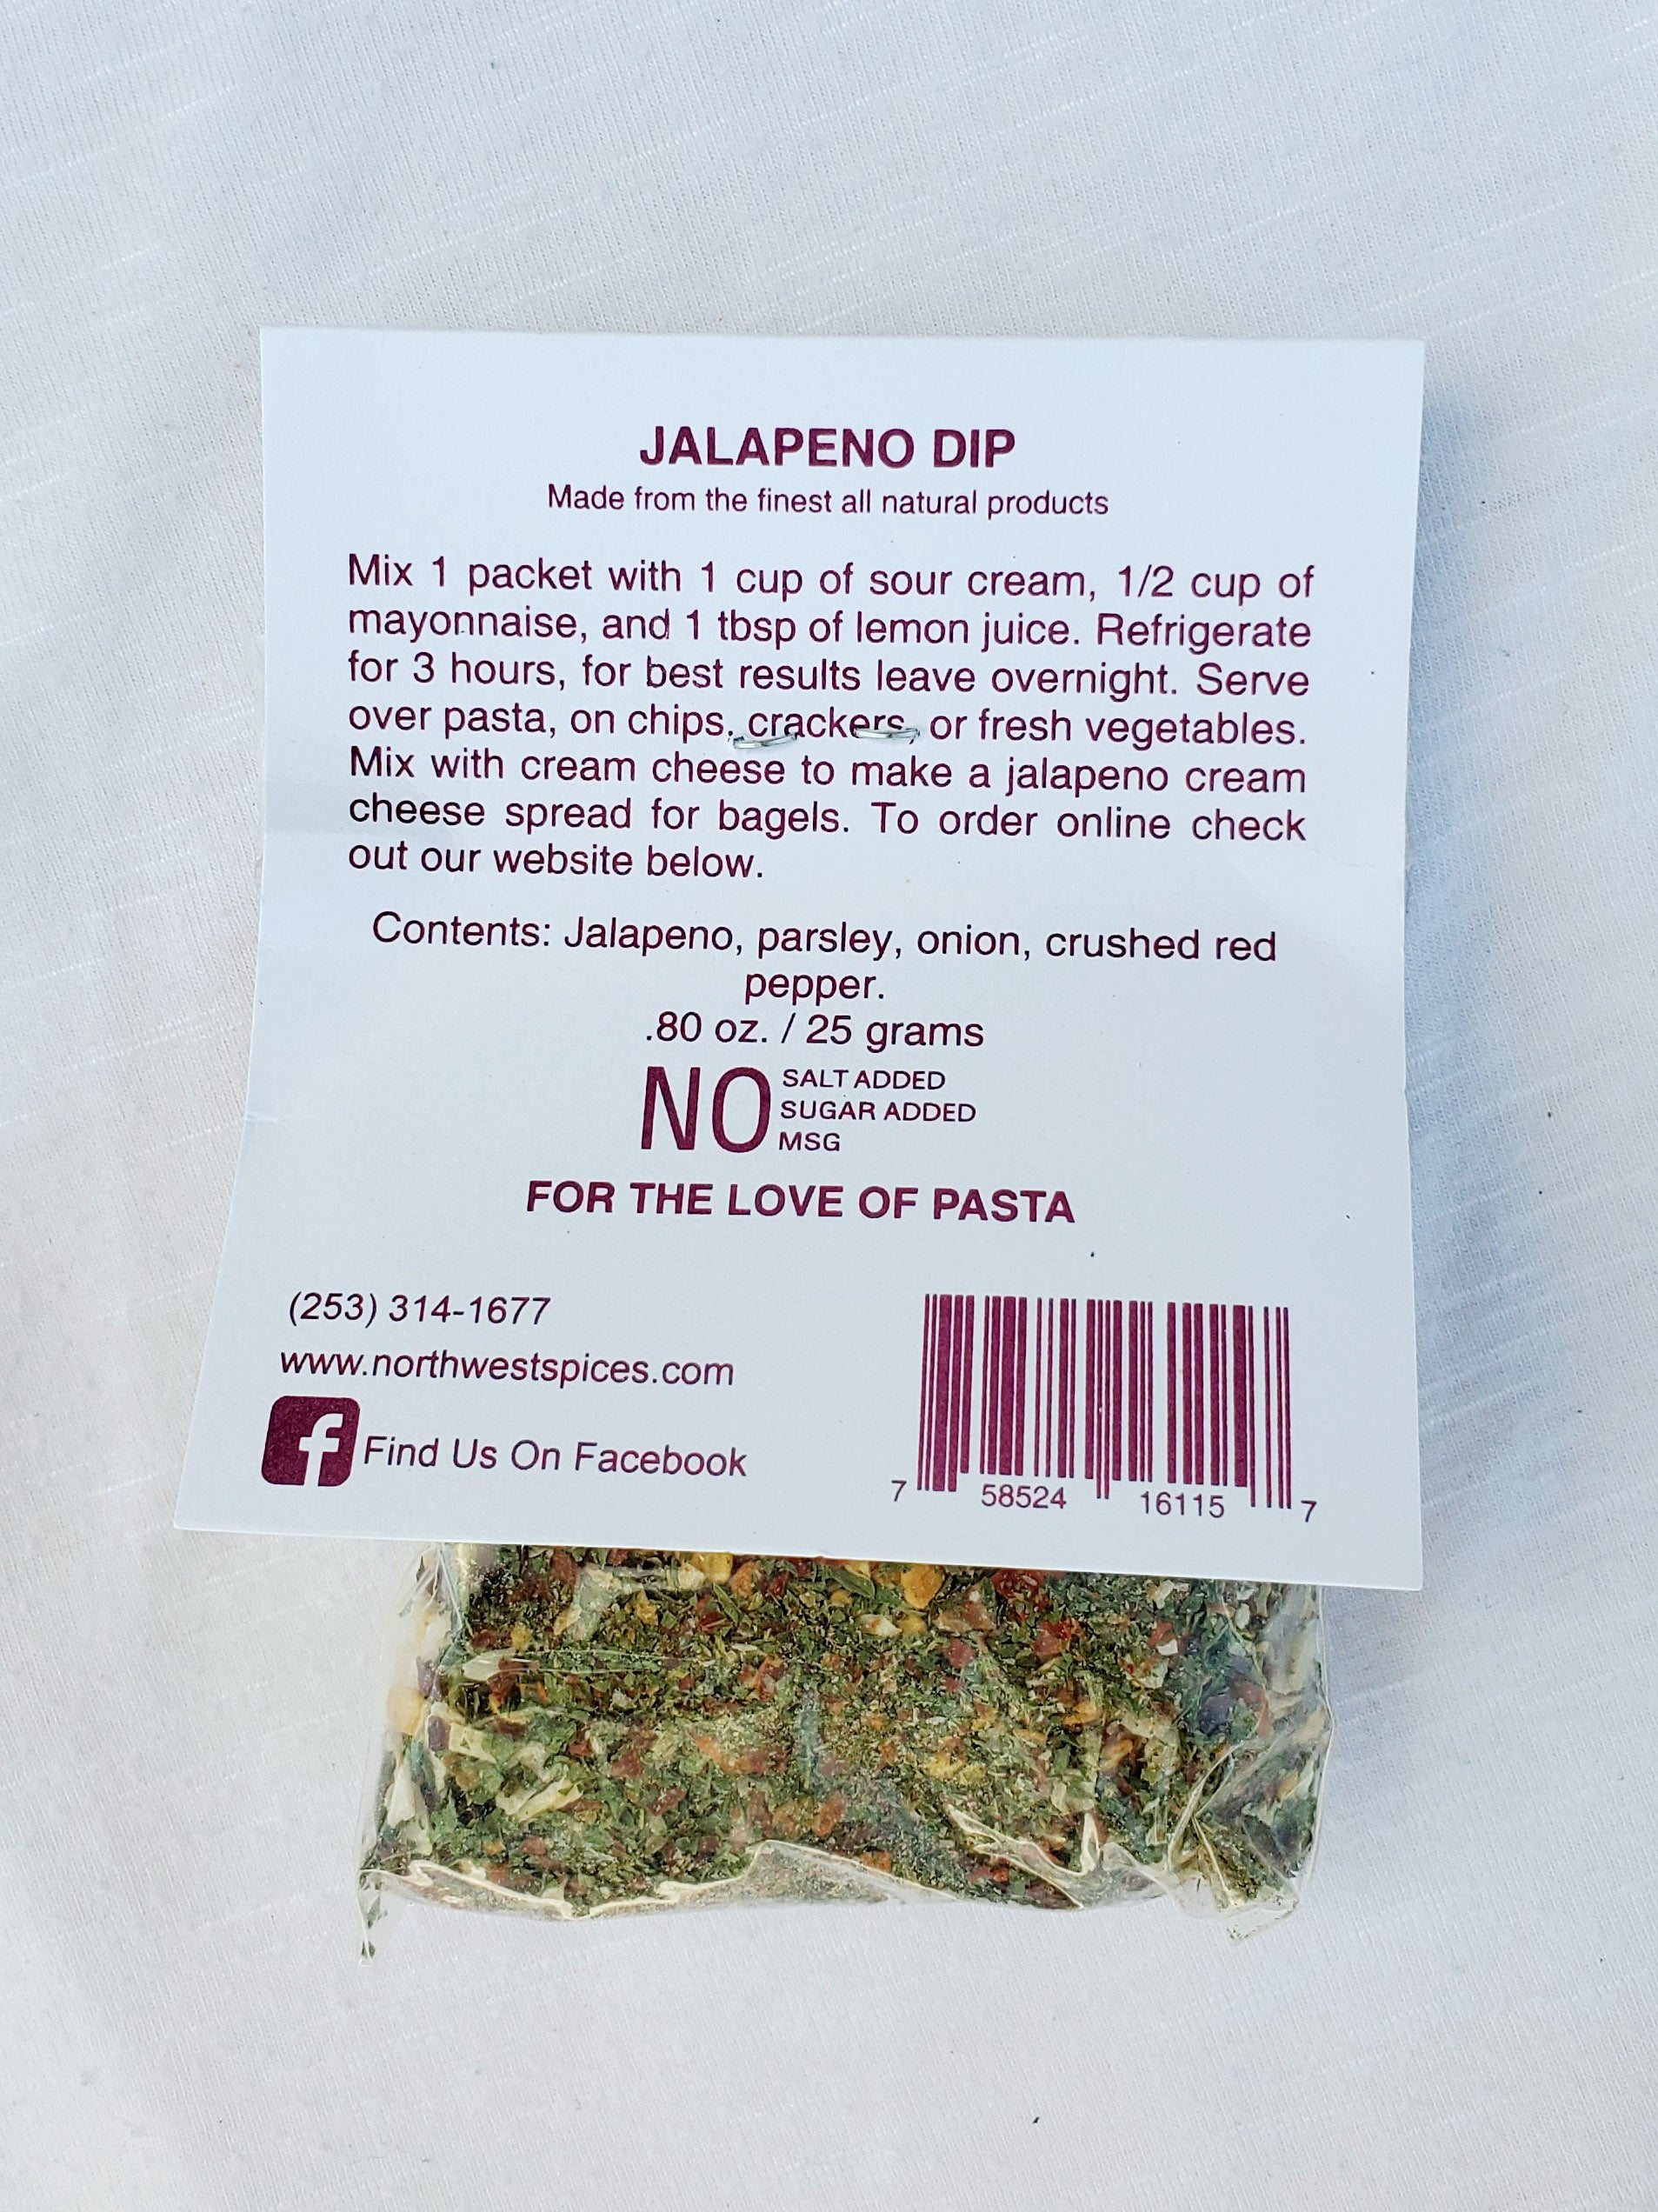 Jalapeno Dip and Seasoning Mix by Northwest Spices Contains, Jalapeno, parsley, onion, crushed red pepper